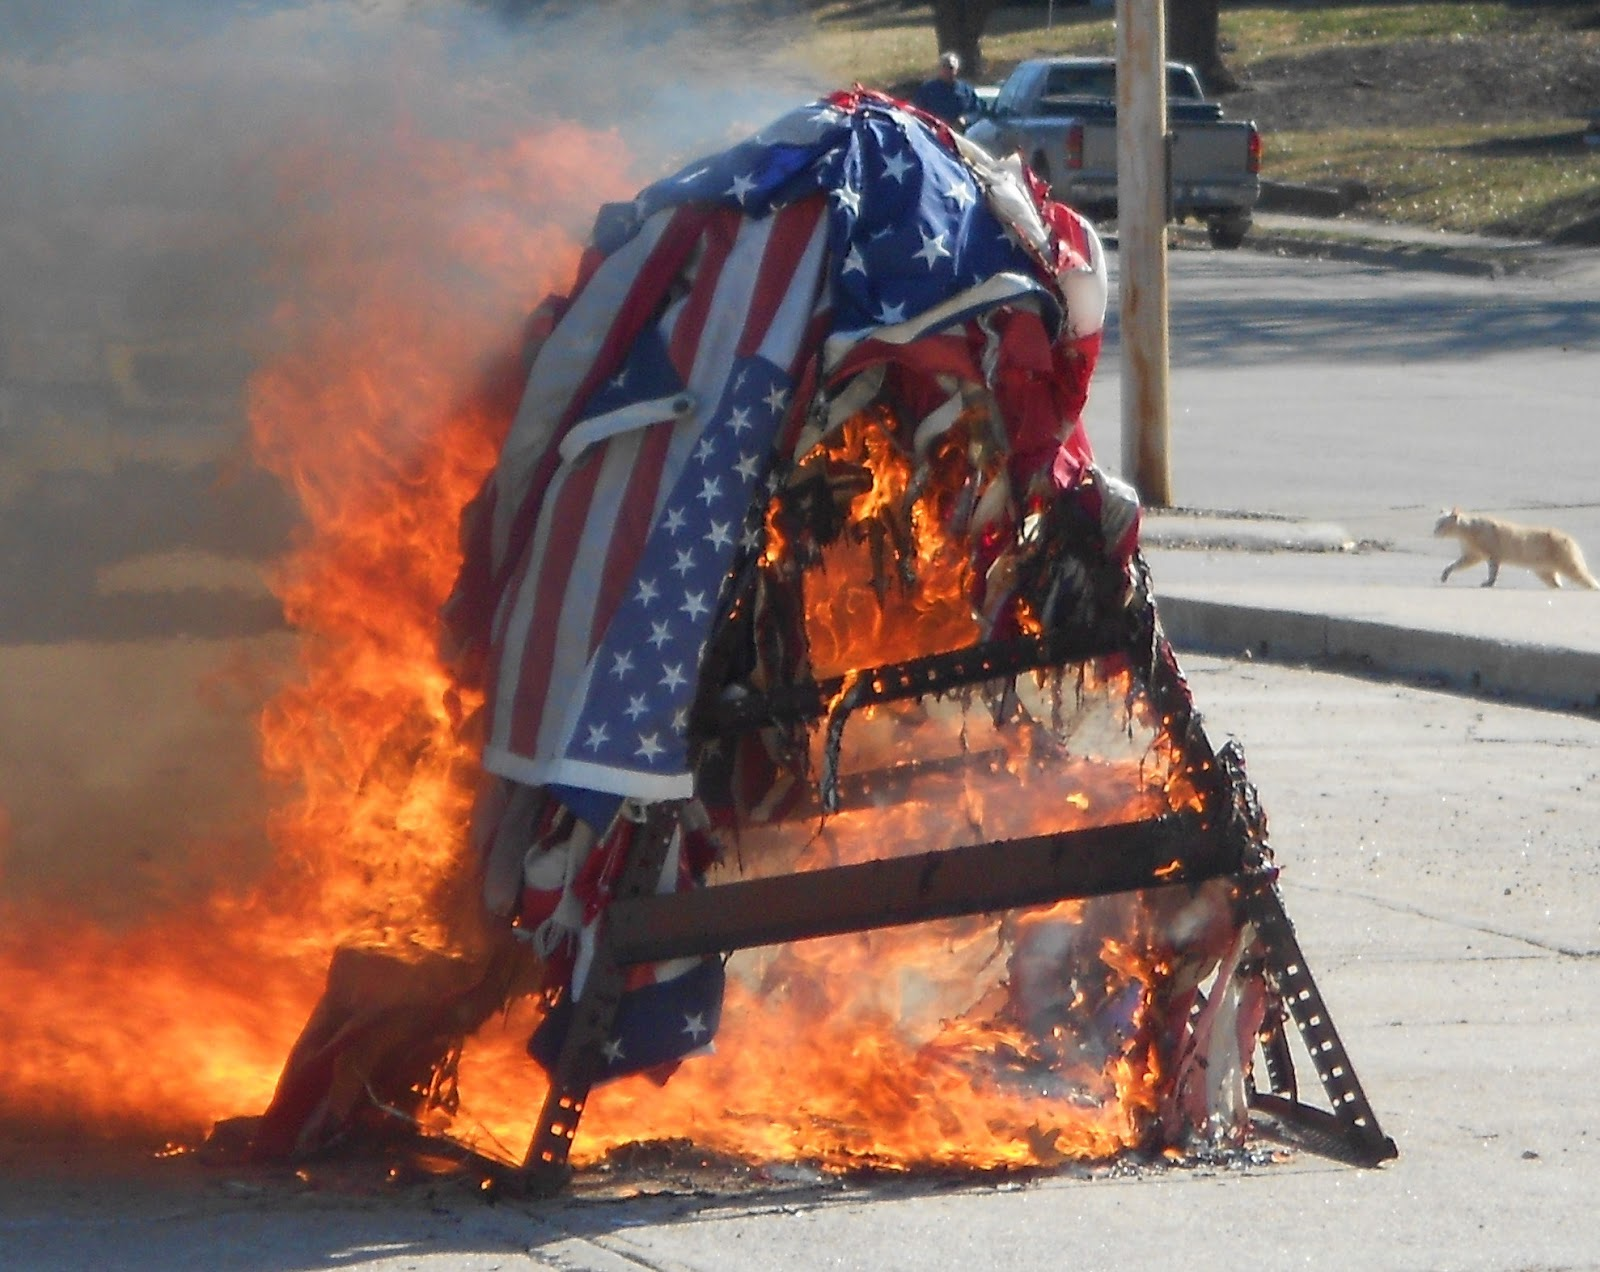 flag burning essay matlab homework help when gregory lee johnson burned a flag he was convicted for flag desecration under texas law but the court of appeals reversed the conviction essays